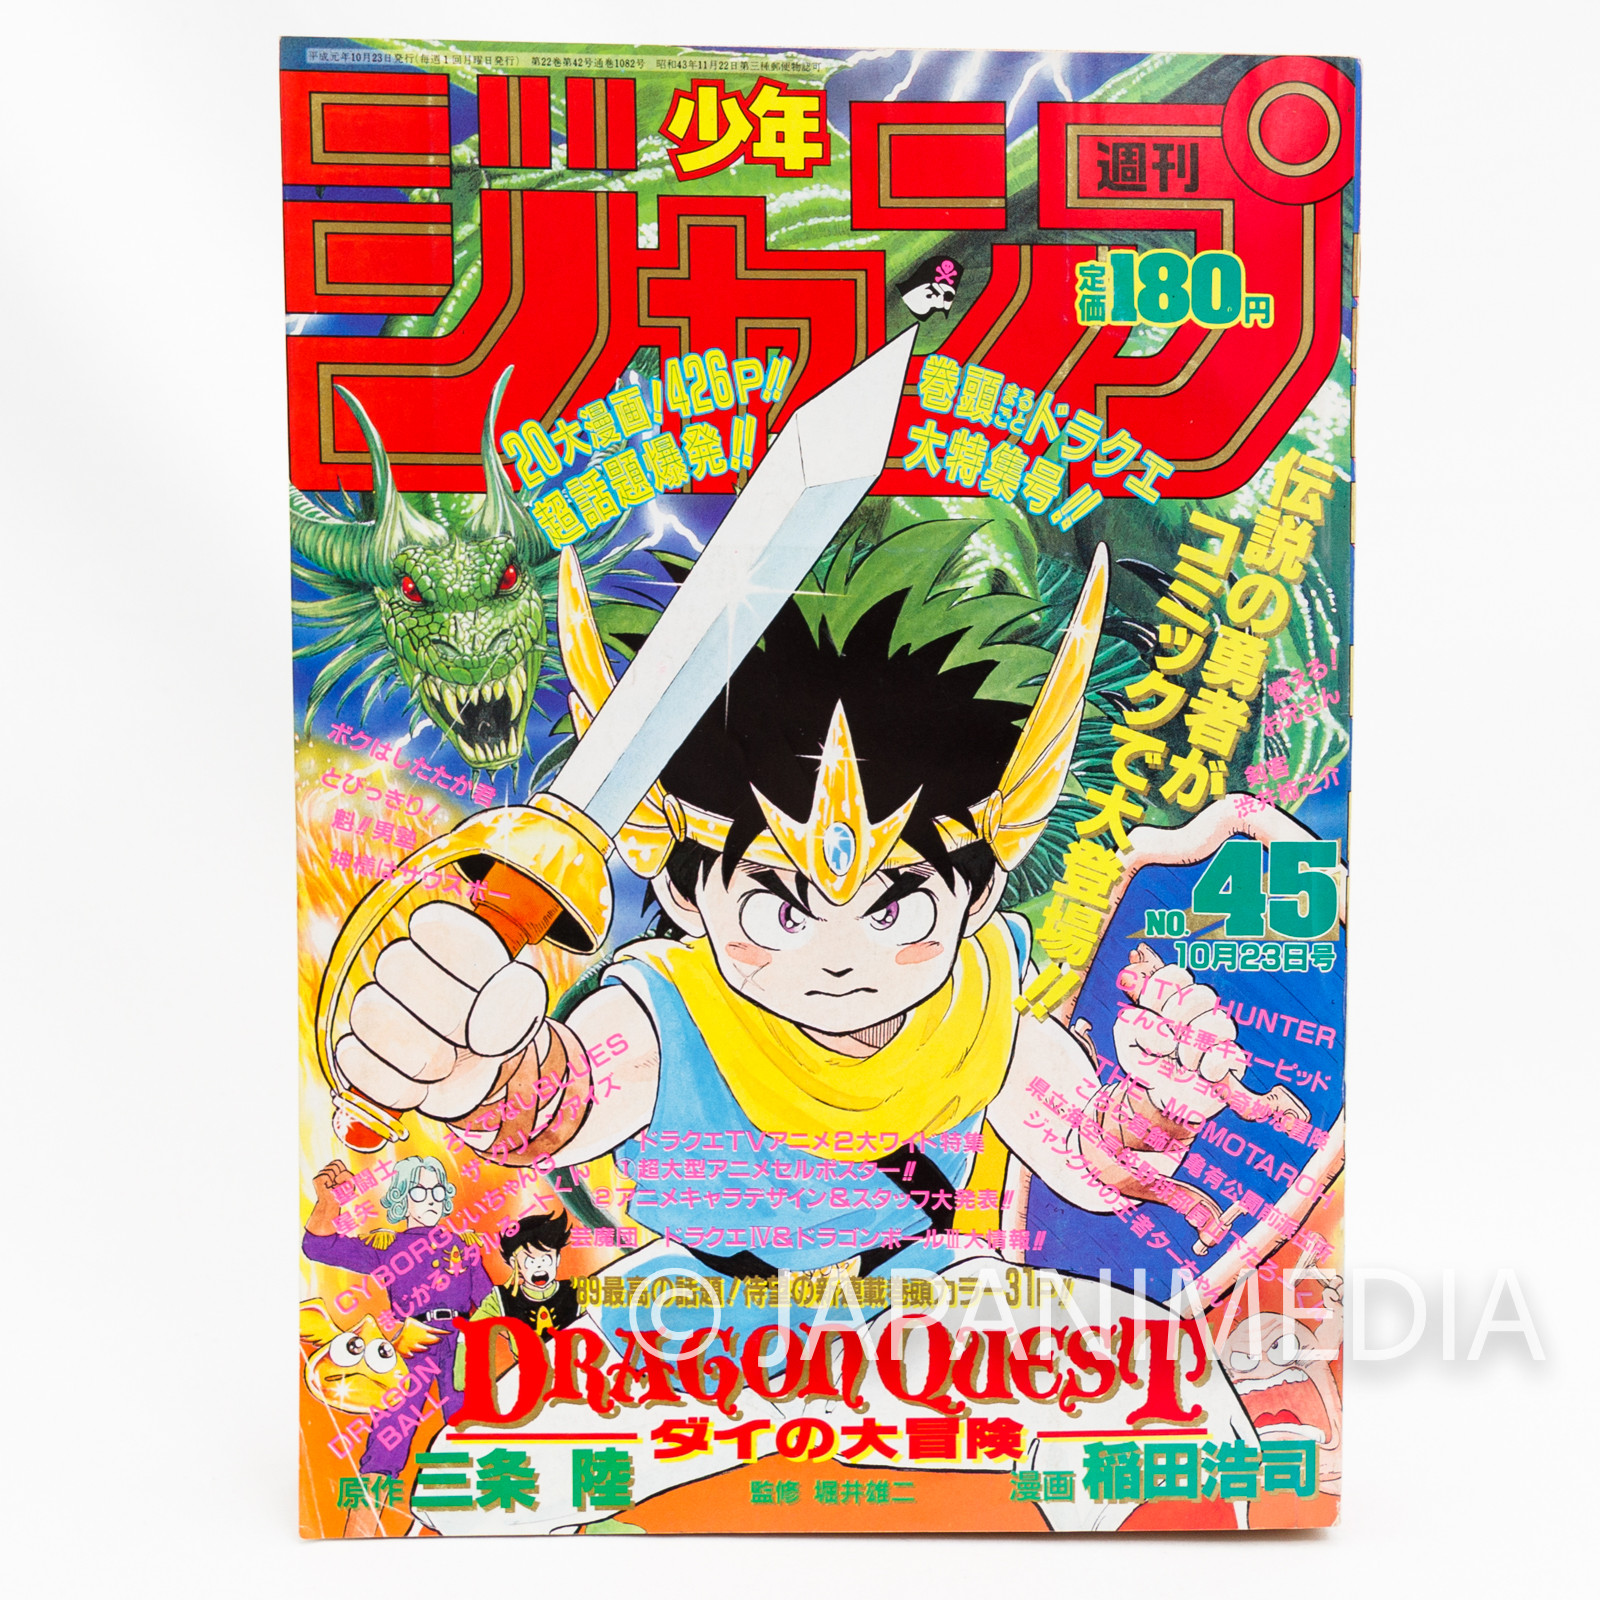 RARE!! Weekly Shonen JUMP Vol.45 1989 The Adventure of Dai/ Japanese Magazine